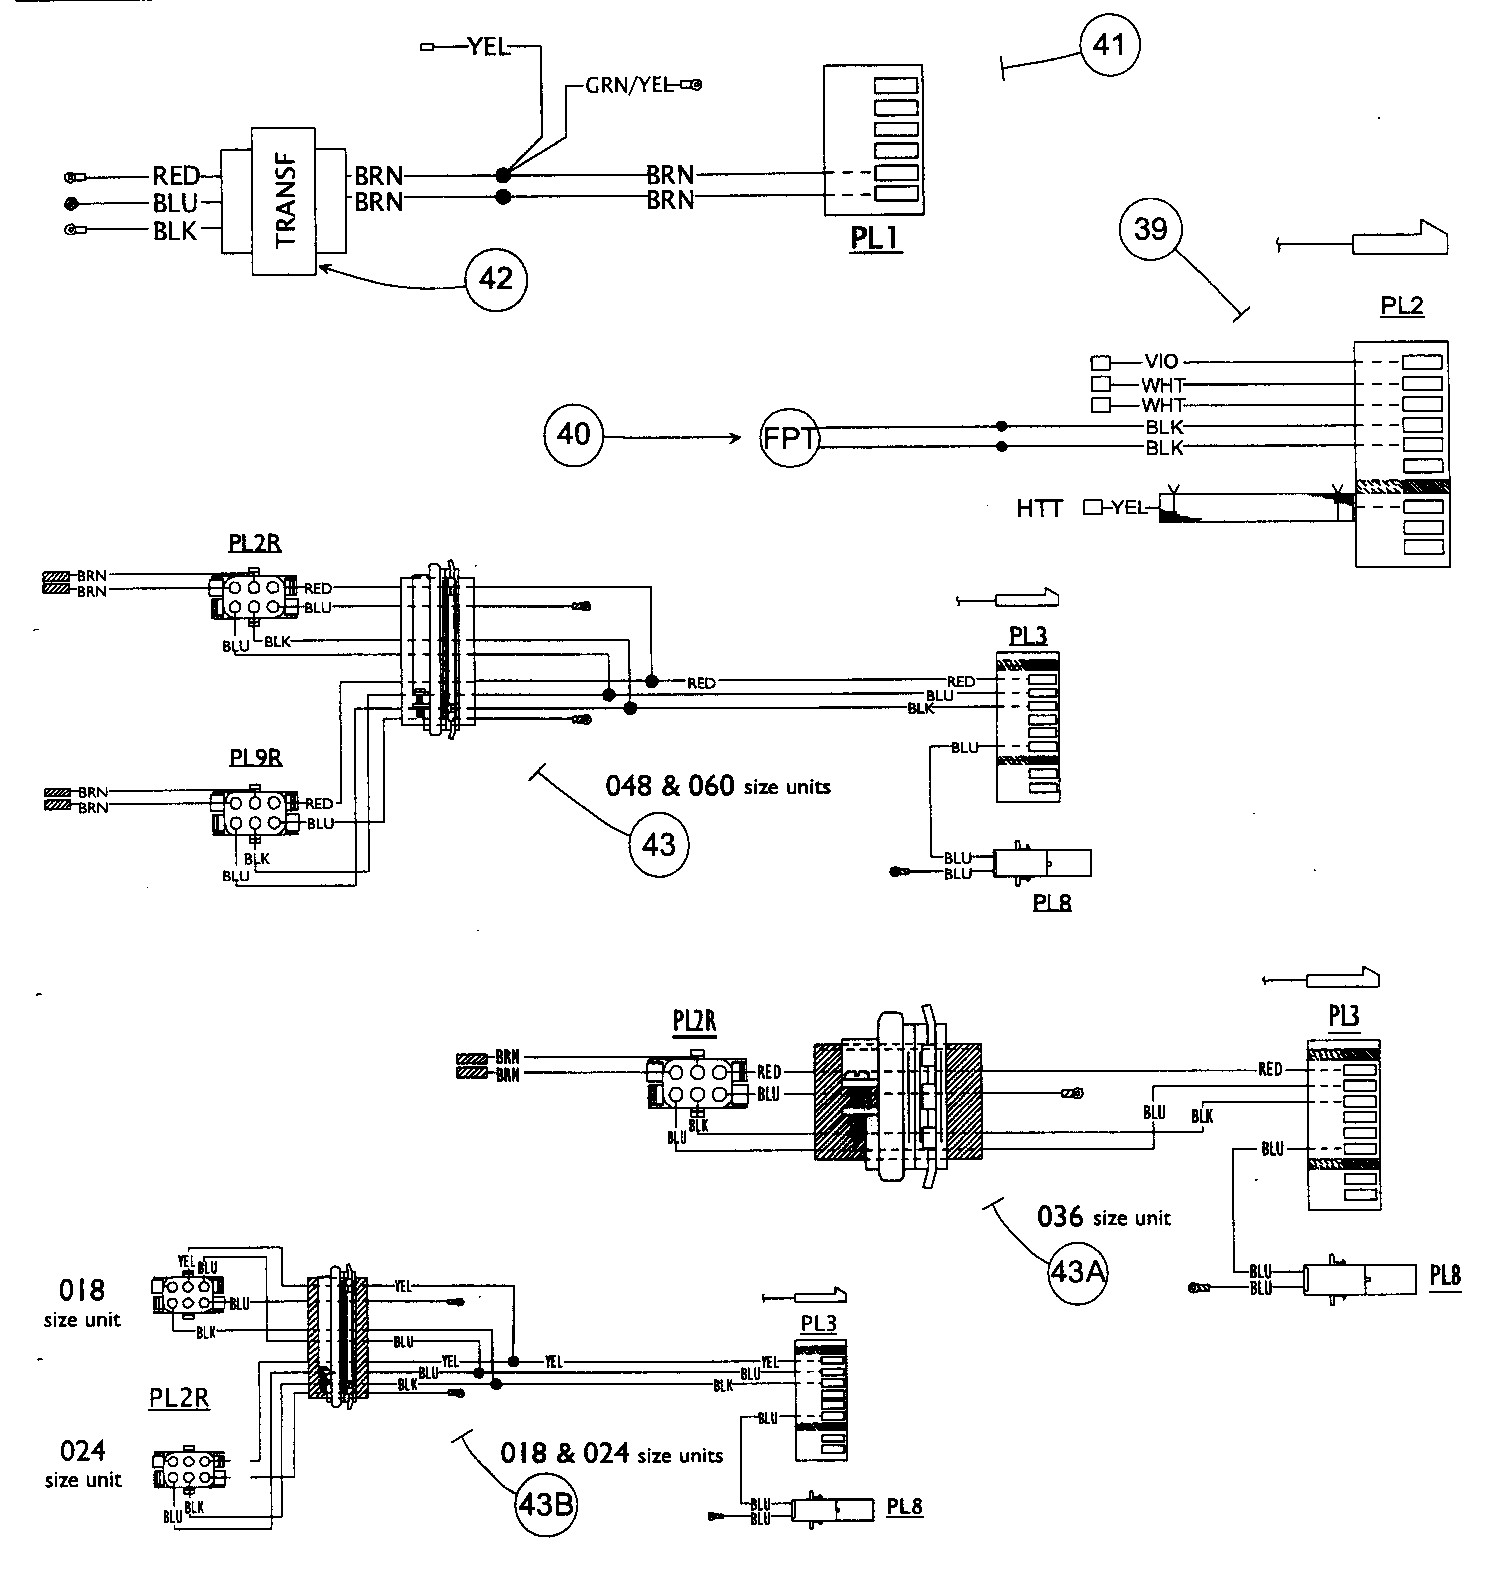 Carrier Air Conditioner Wiring Diagram Diagrams Air Conditioning Condensing Unit Wiring Diagram Basic Of Carrier Air Conditioner Wiring Diagram